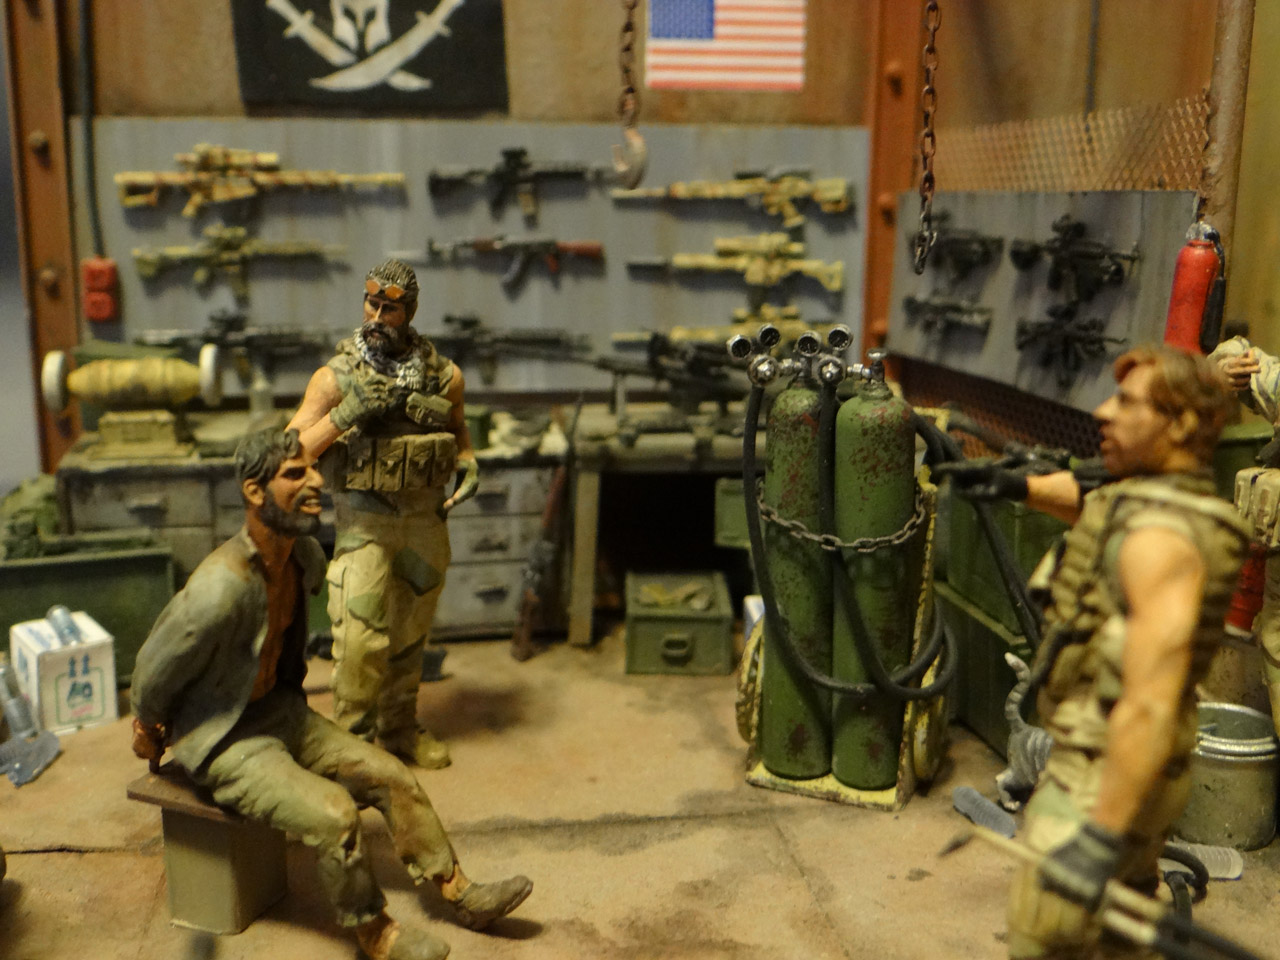 Dioramas and Vignettes: Enforcement to democracy, photo #6